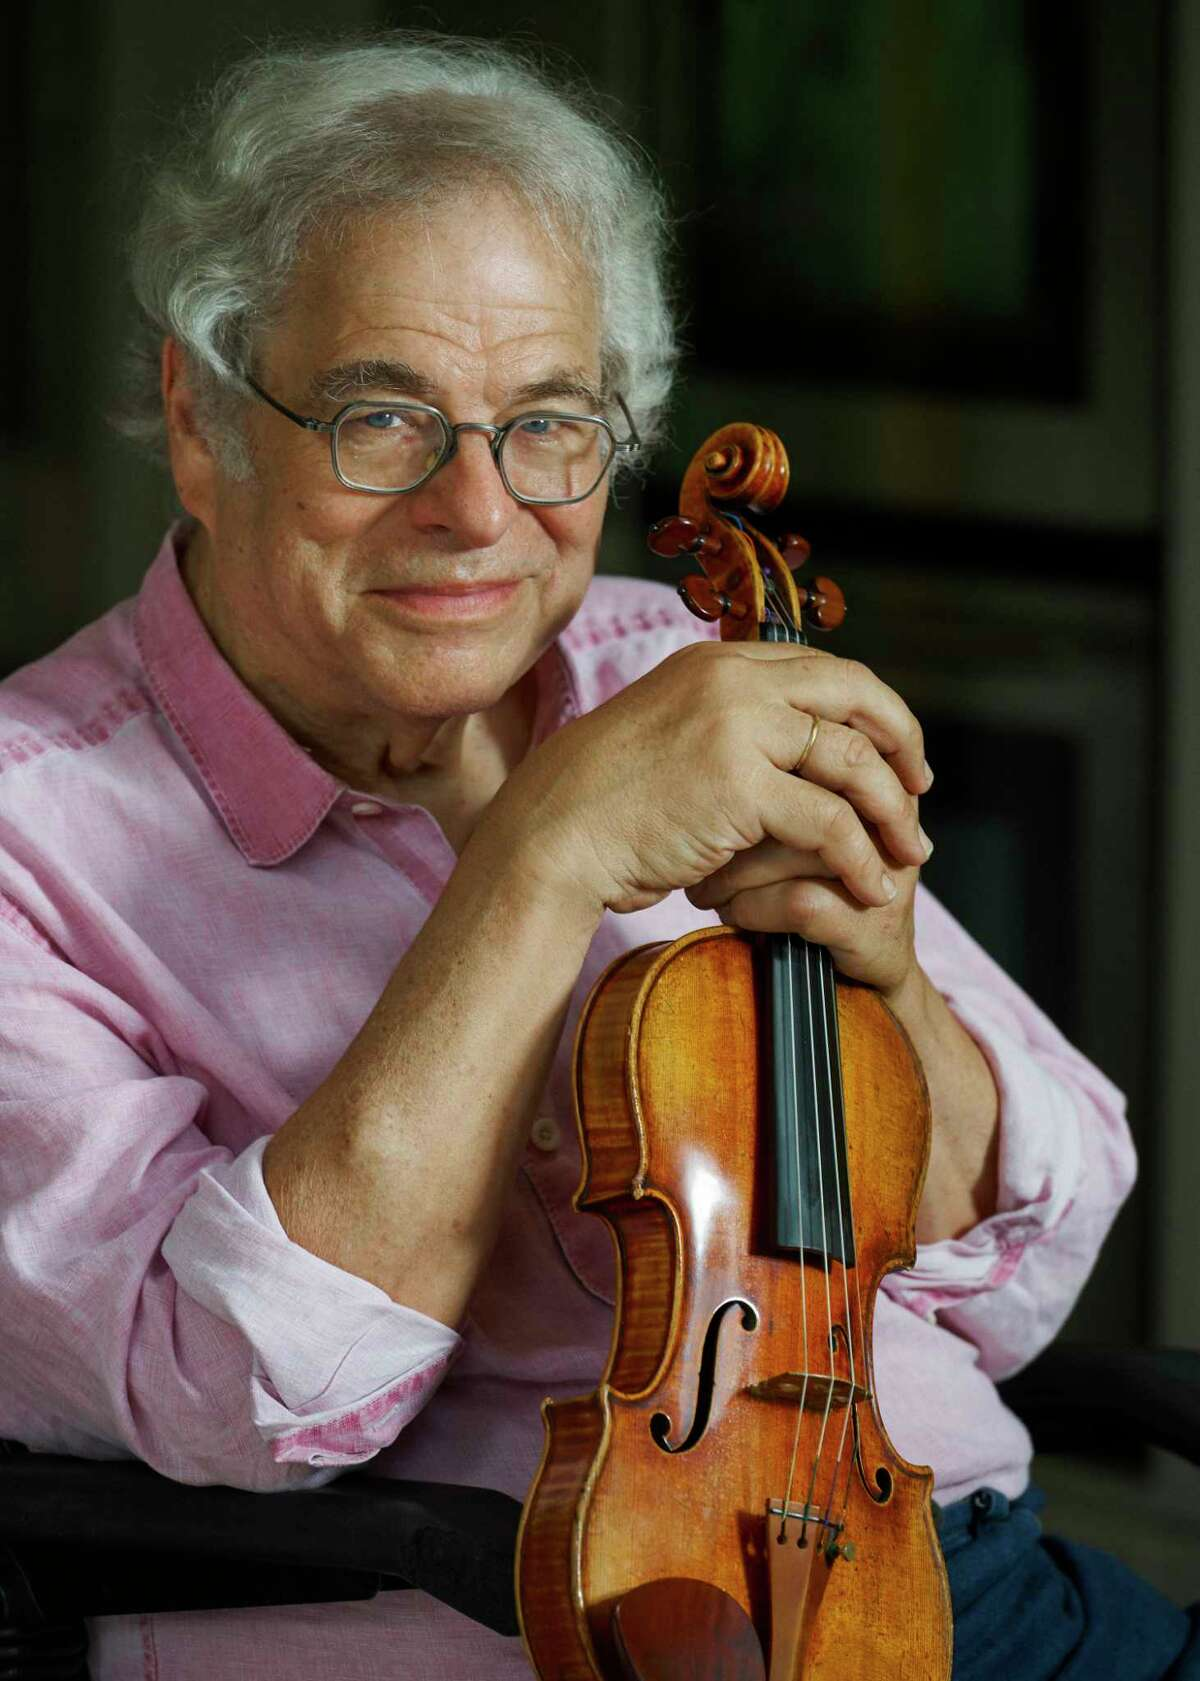 Itzhak Perlman at his home in East Hampton, N.Y., Aug. 16, 2020. Turning 75 this month, he has been so ubiquitous for so long that it is easy to take him for granted. (Yael Malka/The New York Times)